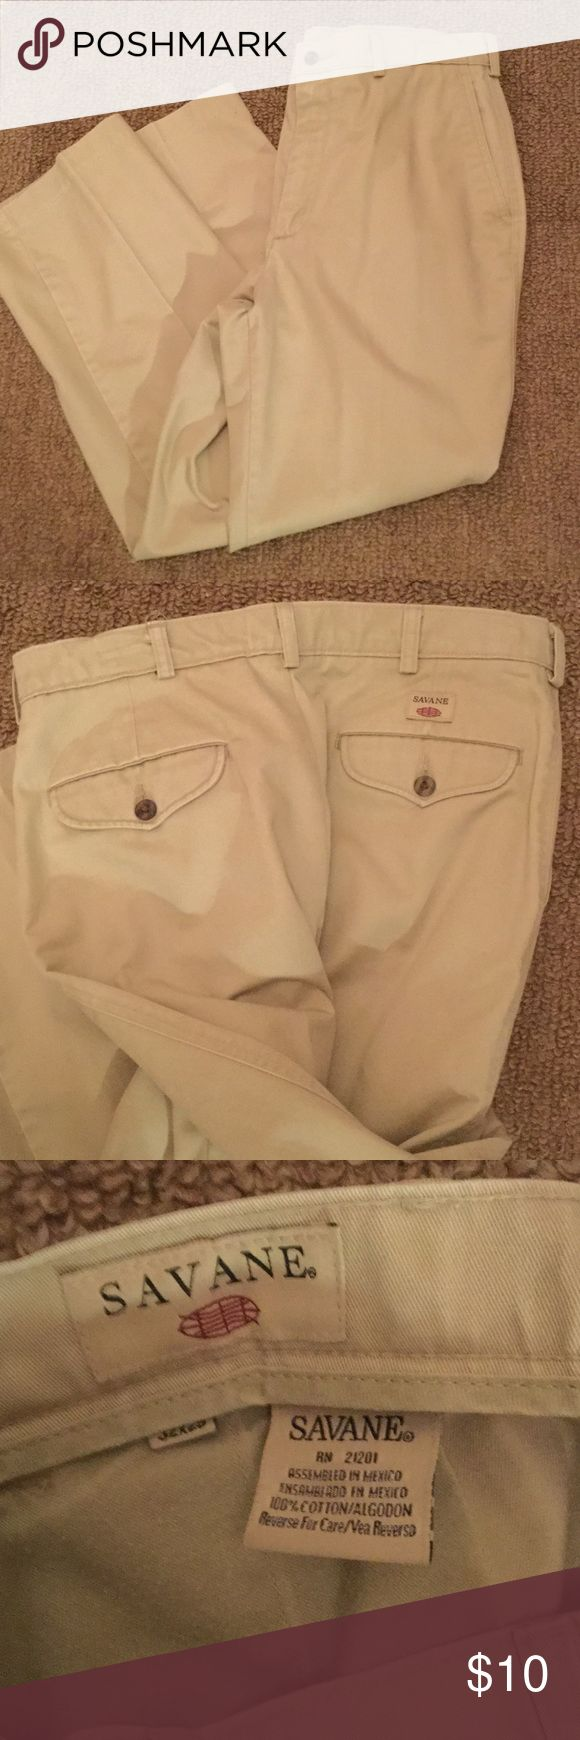 Men's Savane Pants - size 32 x 29 Excellent used condition. Smoke and pet free home.  machine washable and dryer safe Savane Pants Chinos & Khakis